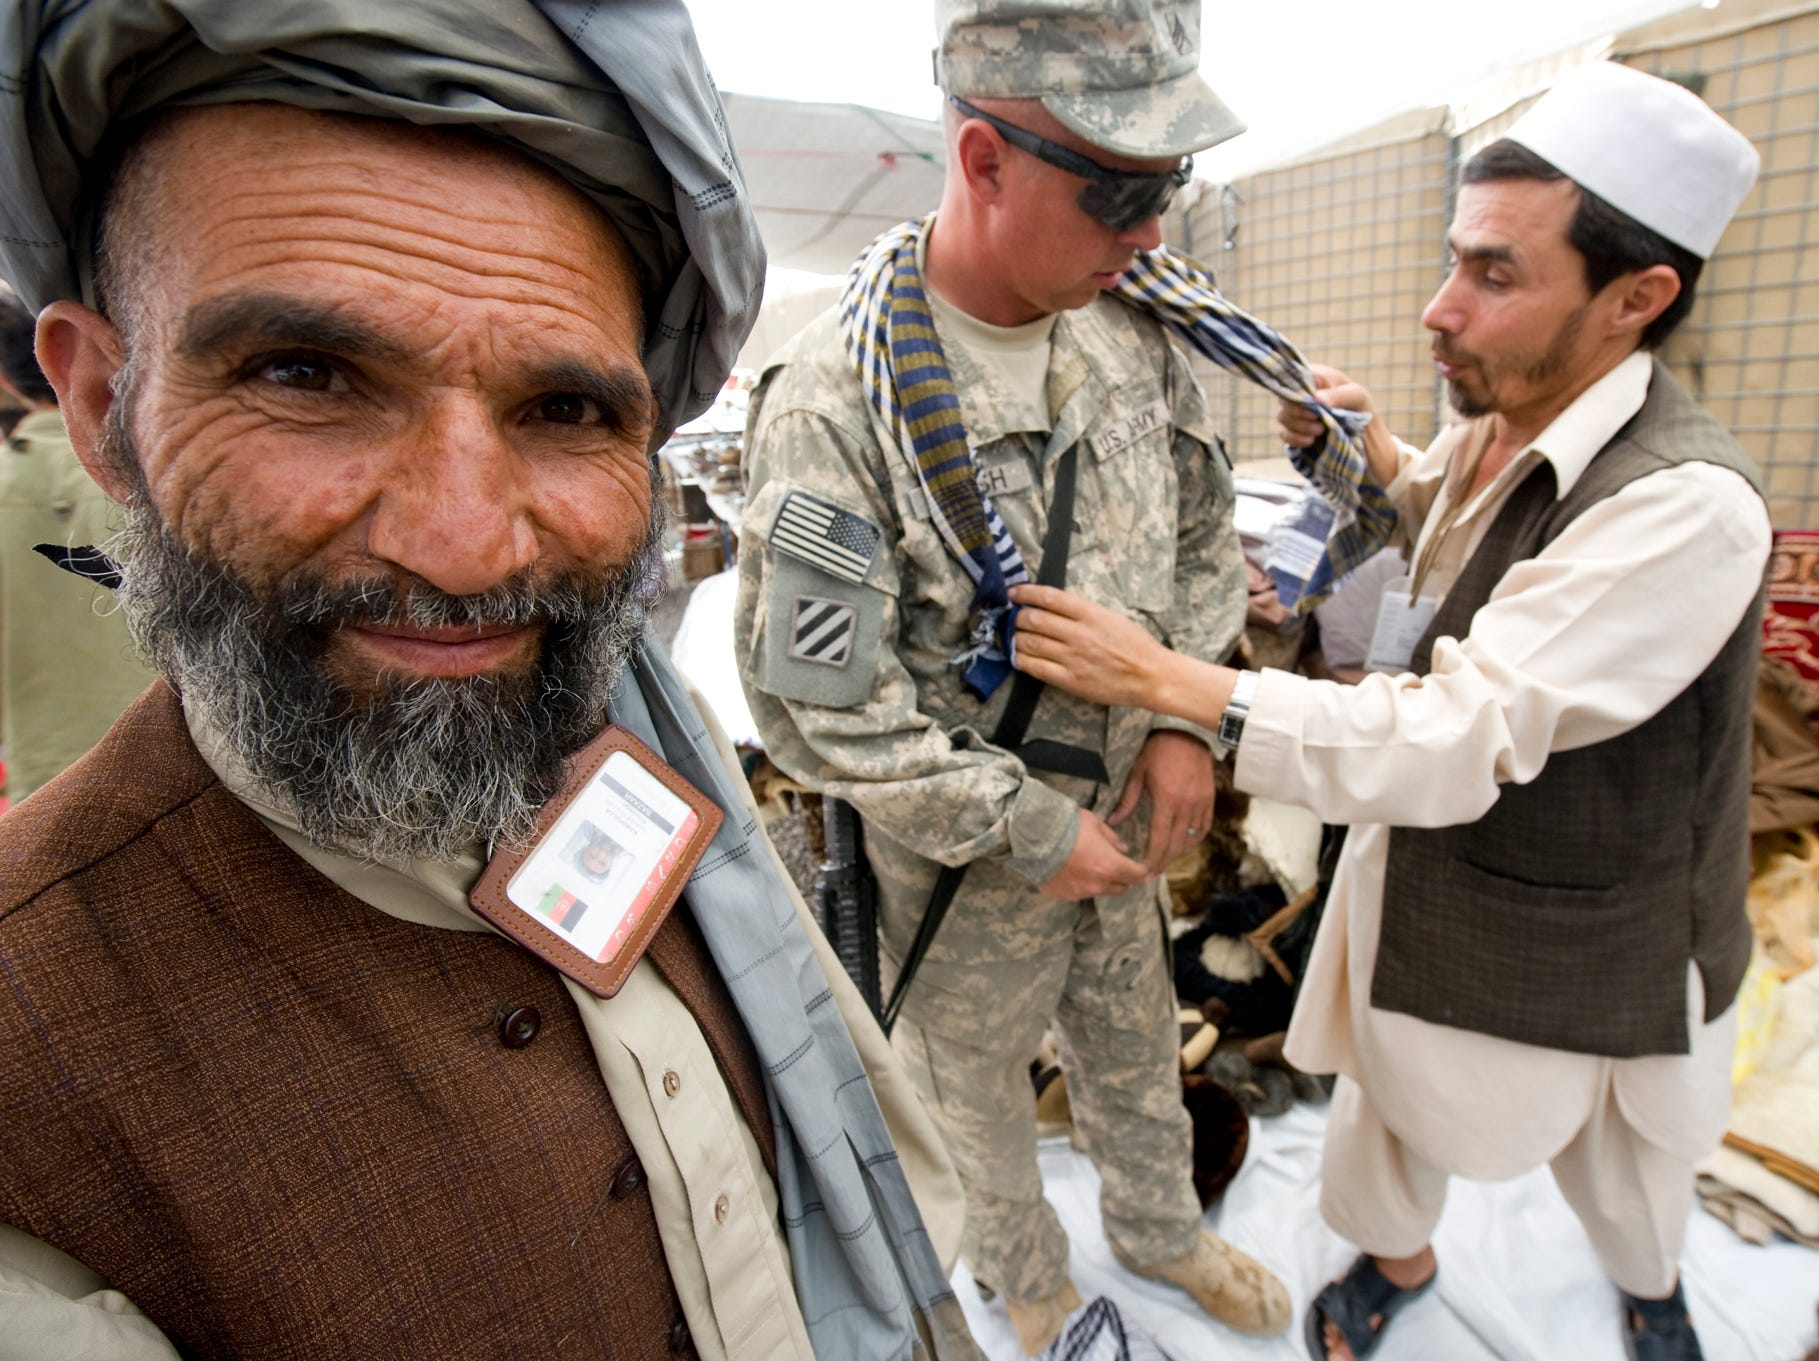 Left, Karimulla Sharif Fullah keeps a sharp eye out for new customers as Allah Mohammad tries to sell an Oklahoma Guardsman on a scarf on Monday, September 13, 2010, at a market set up at the edge of Forward Operating Base Gardez.